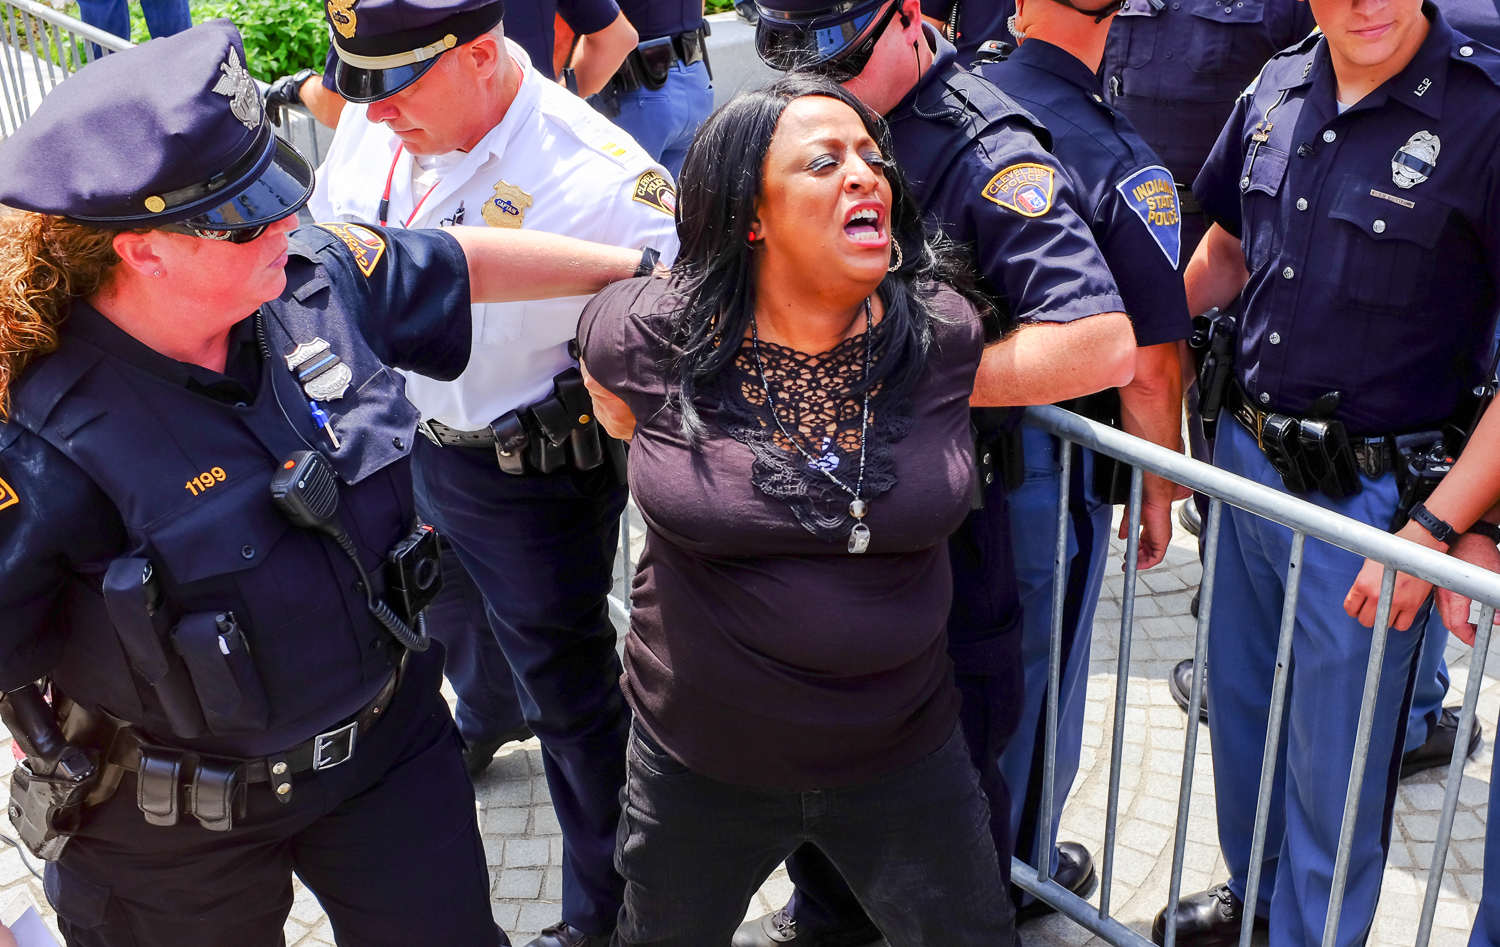 Kathy Wray Coleman, being arrested in Public Square,only minutes after speaking out about police brutality. She had an outstanding warrant for assaulting a police officer.